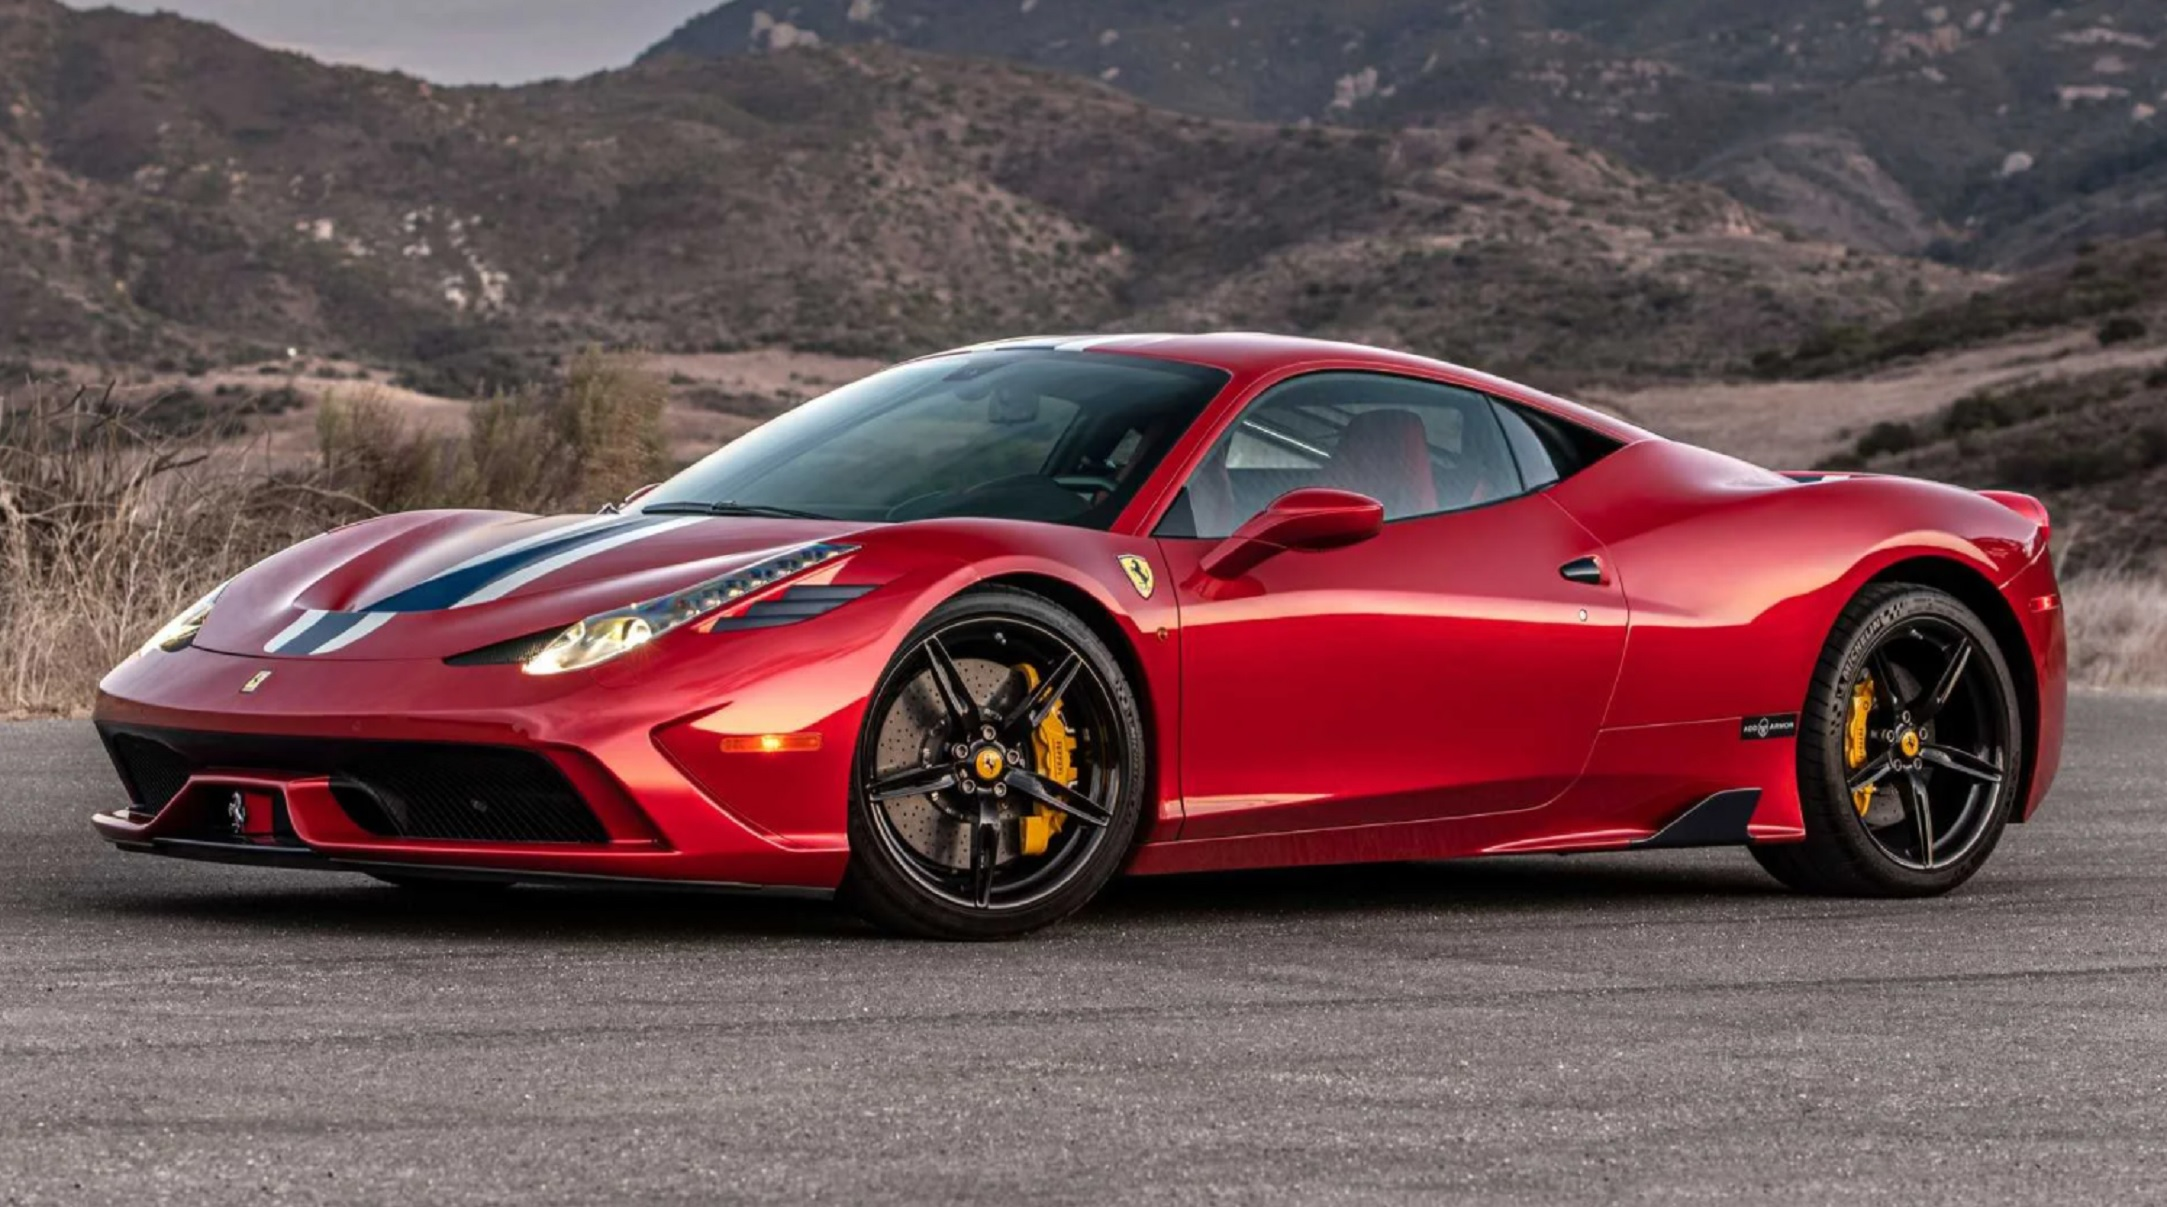 La Roux This Ferrari 458 Speciale Is Bulletproof